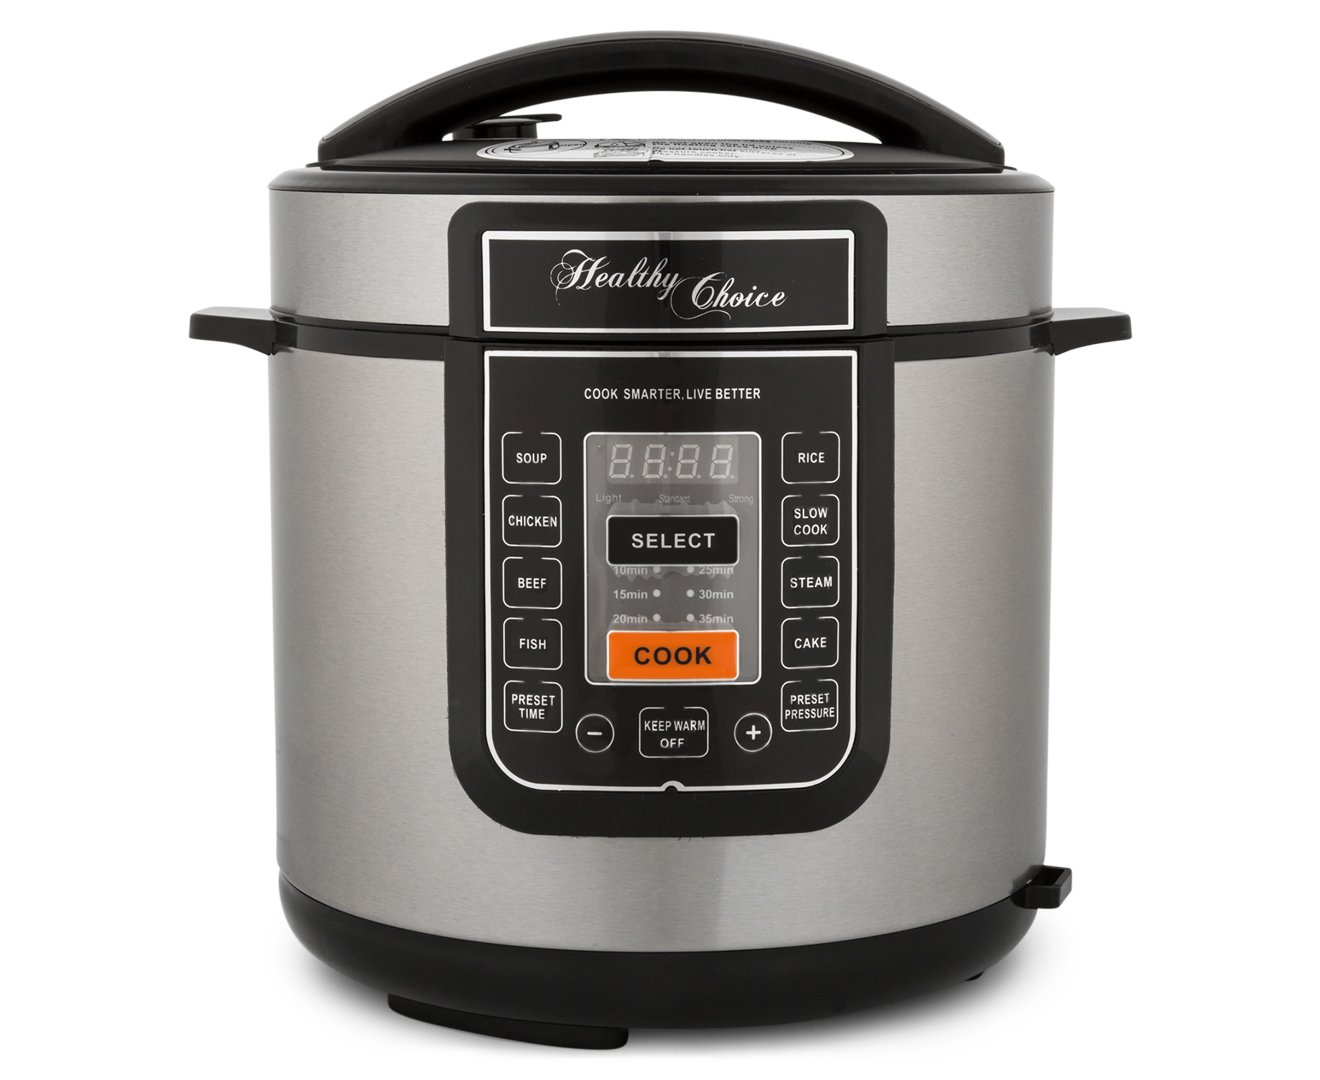 Healthy Choice 6L Pressure/Slow Cooker